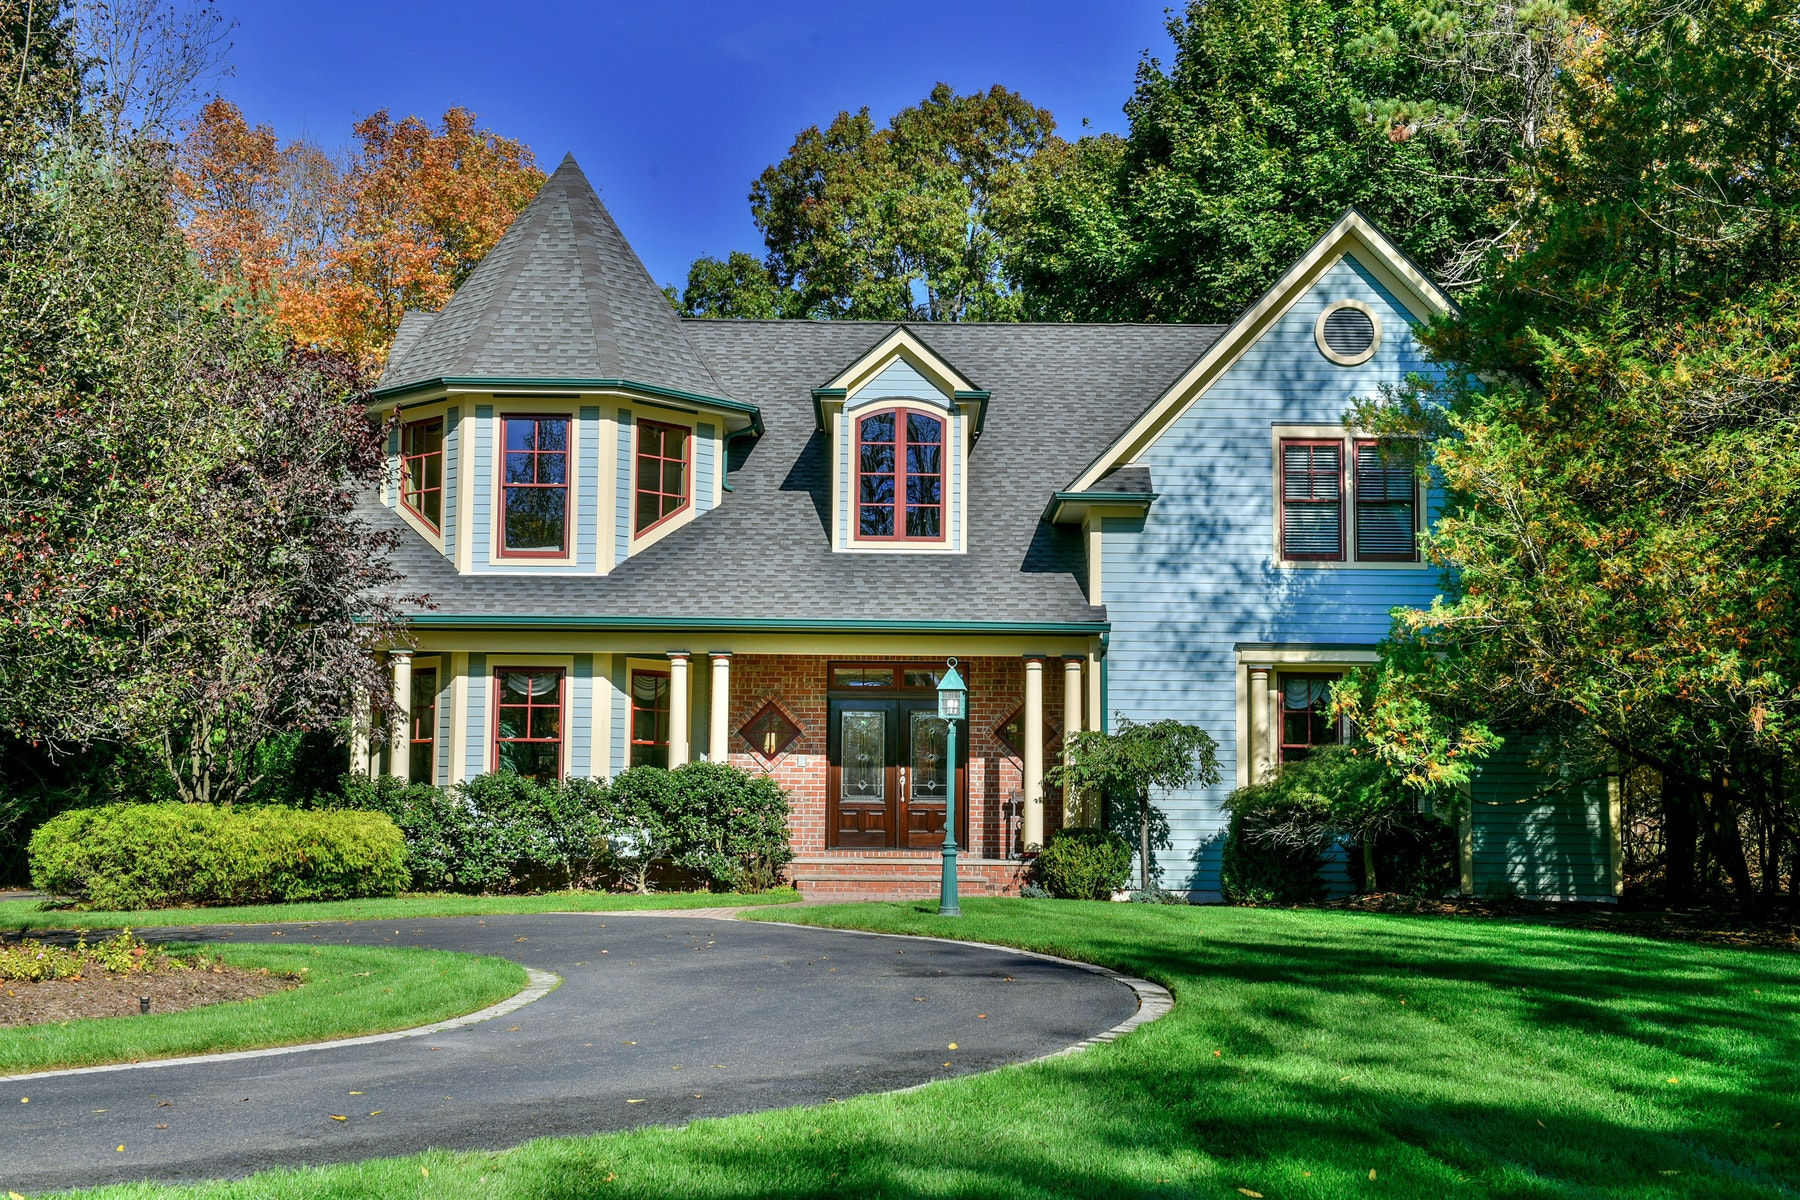 Single Family Home for Sale at Charming Farmhouse Colonial 15 Lower Cross Rd Saddle River, New Jersey 07458 United States